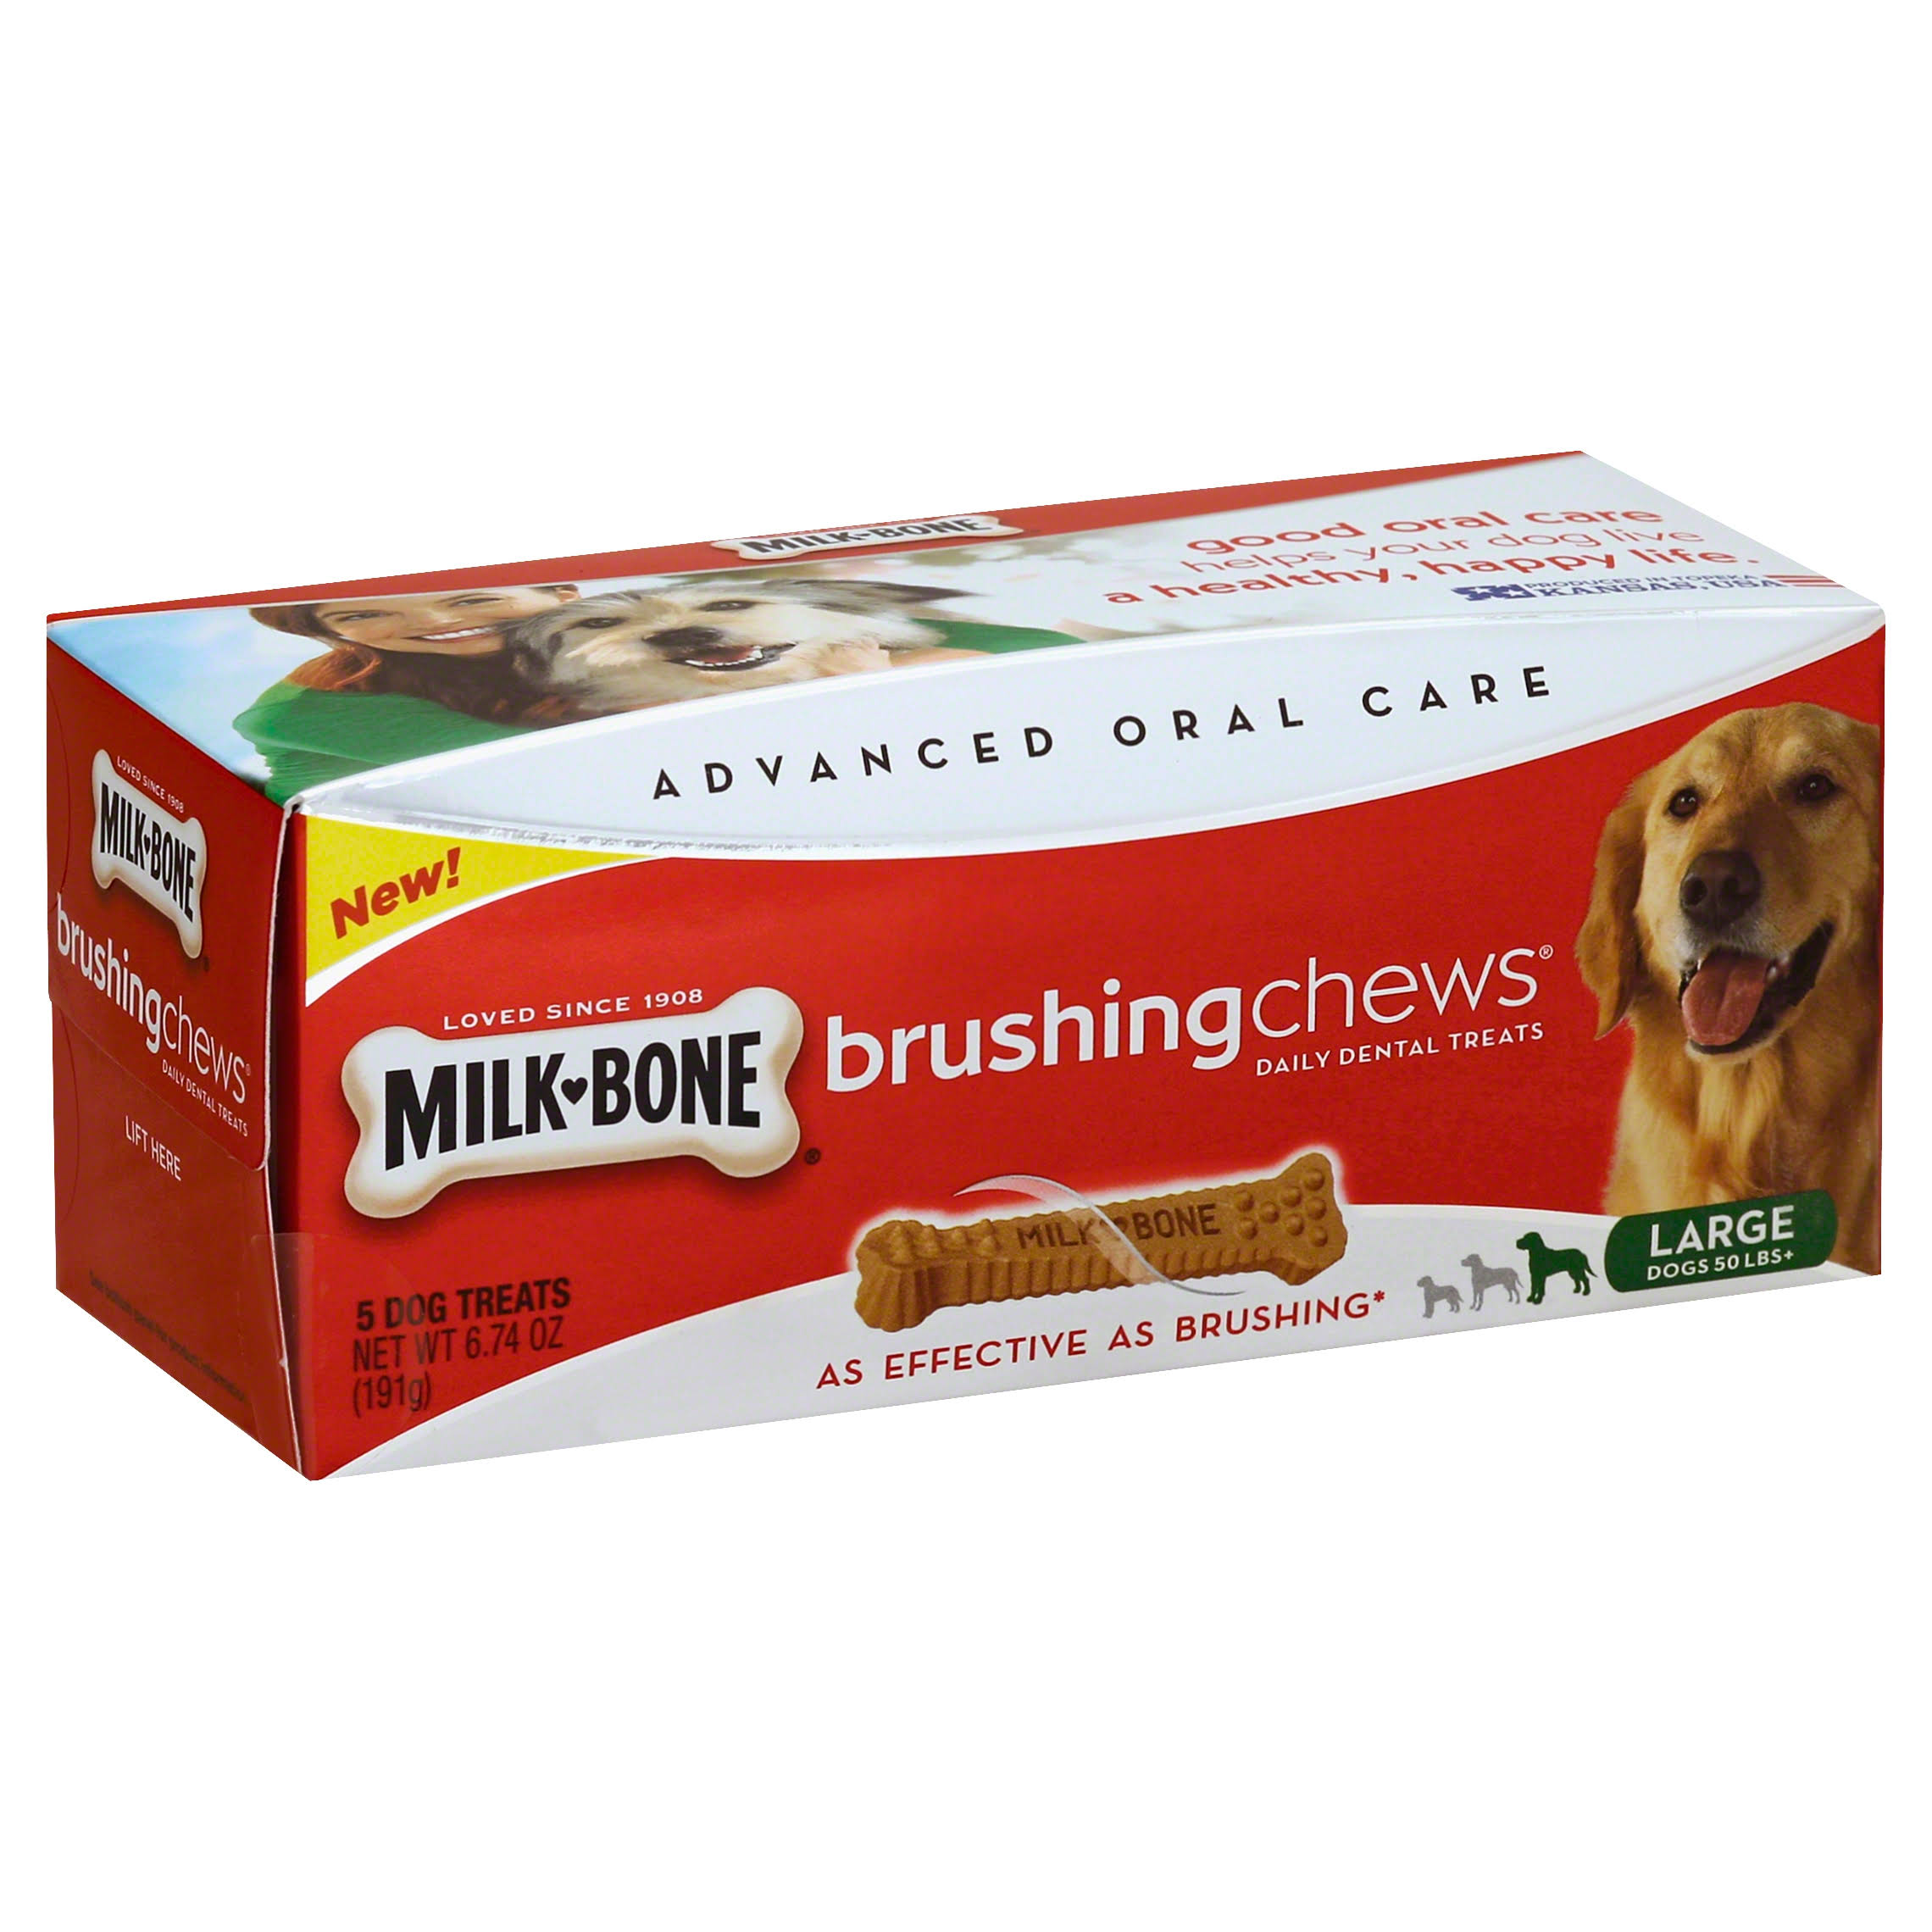 Milk-Bone Brushing Chews Daily Dental Treats - Large, 6.74oz